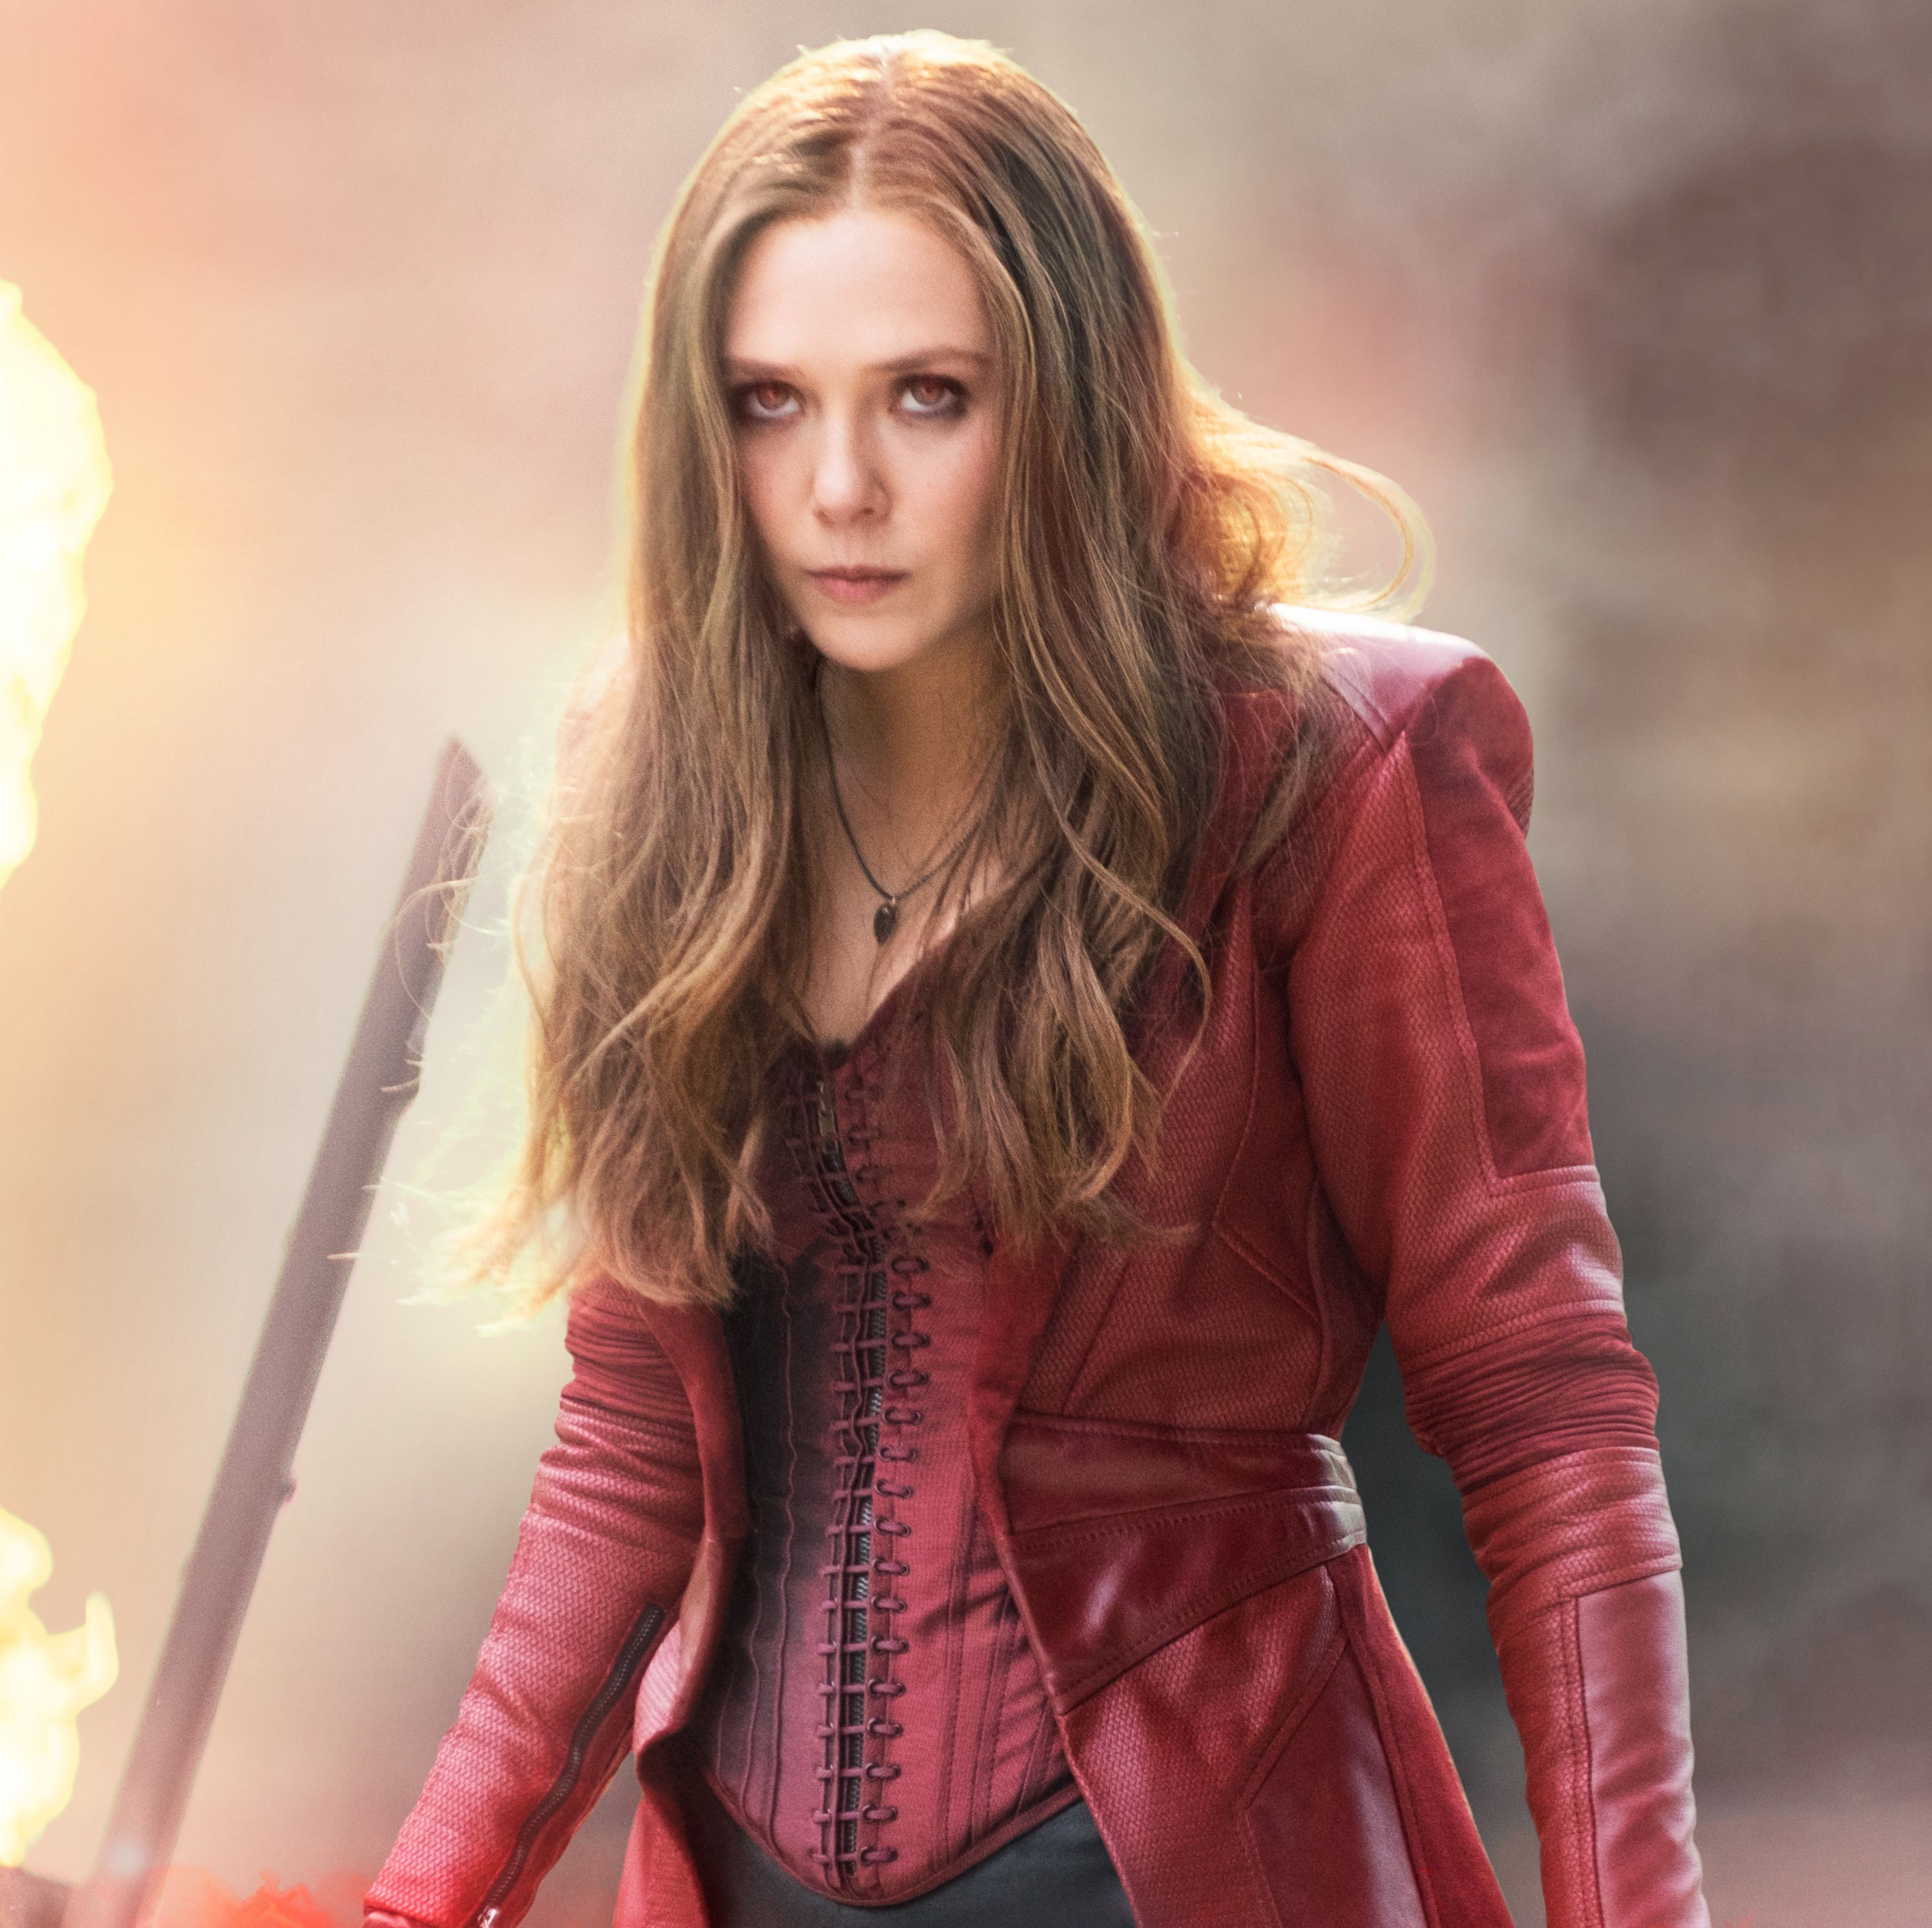 Avengers: Endgame star Elizabeth Olsen hints at 1950s setting for Wanda and Vision spin-off